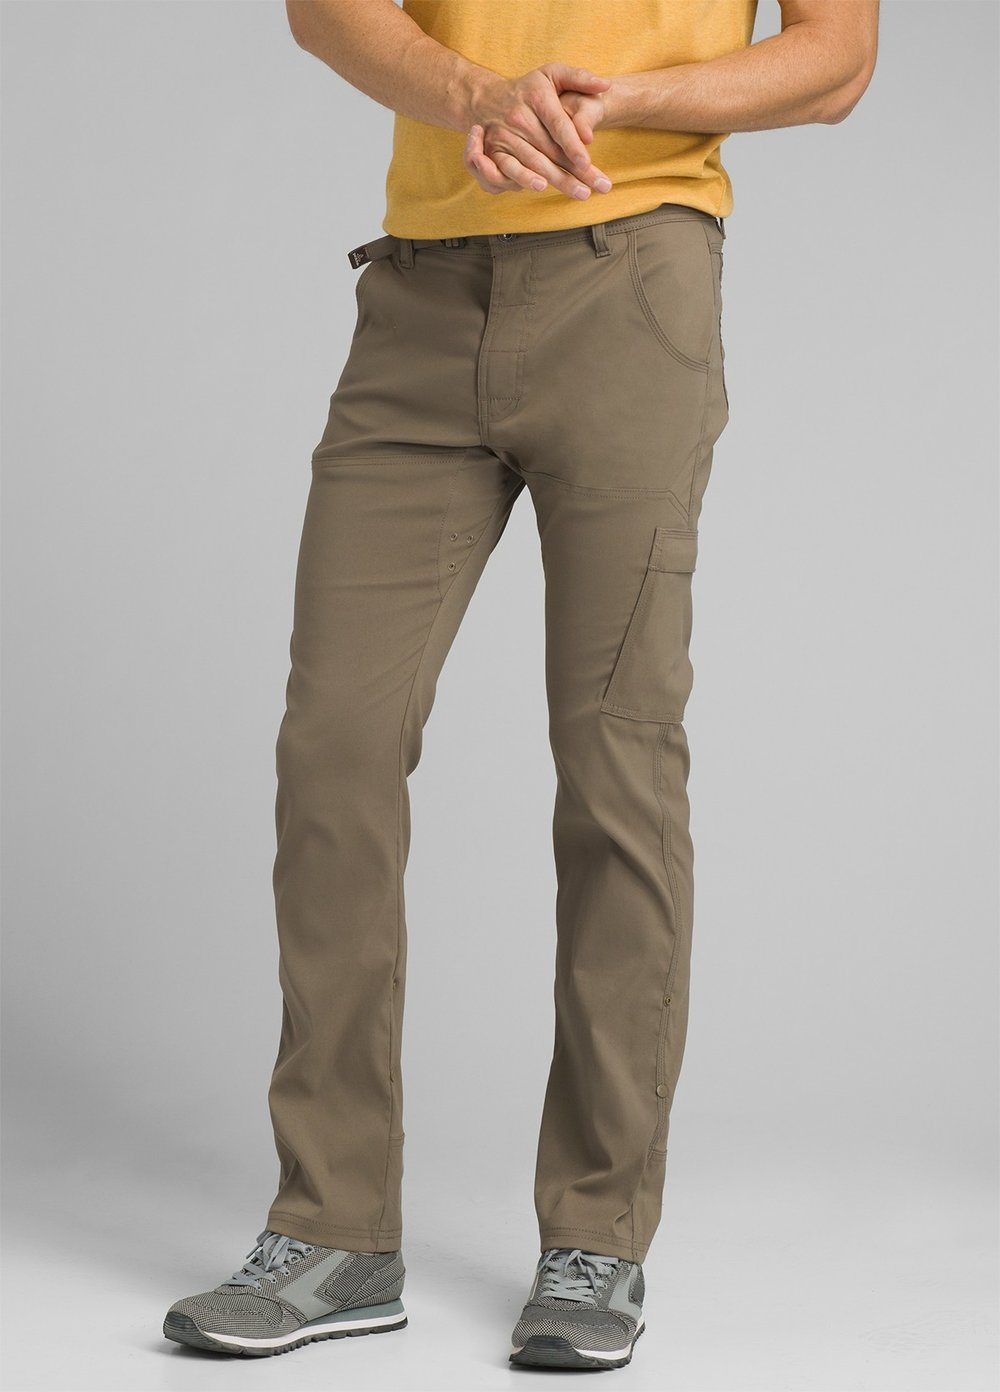 Pants or Shorts - If you're not comfortable wearing a pair of exercise shorts on the trail, just pick up a pair of these PrAna pants. They're durable, light, and cost effective.